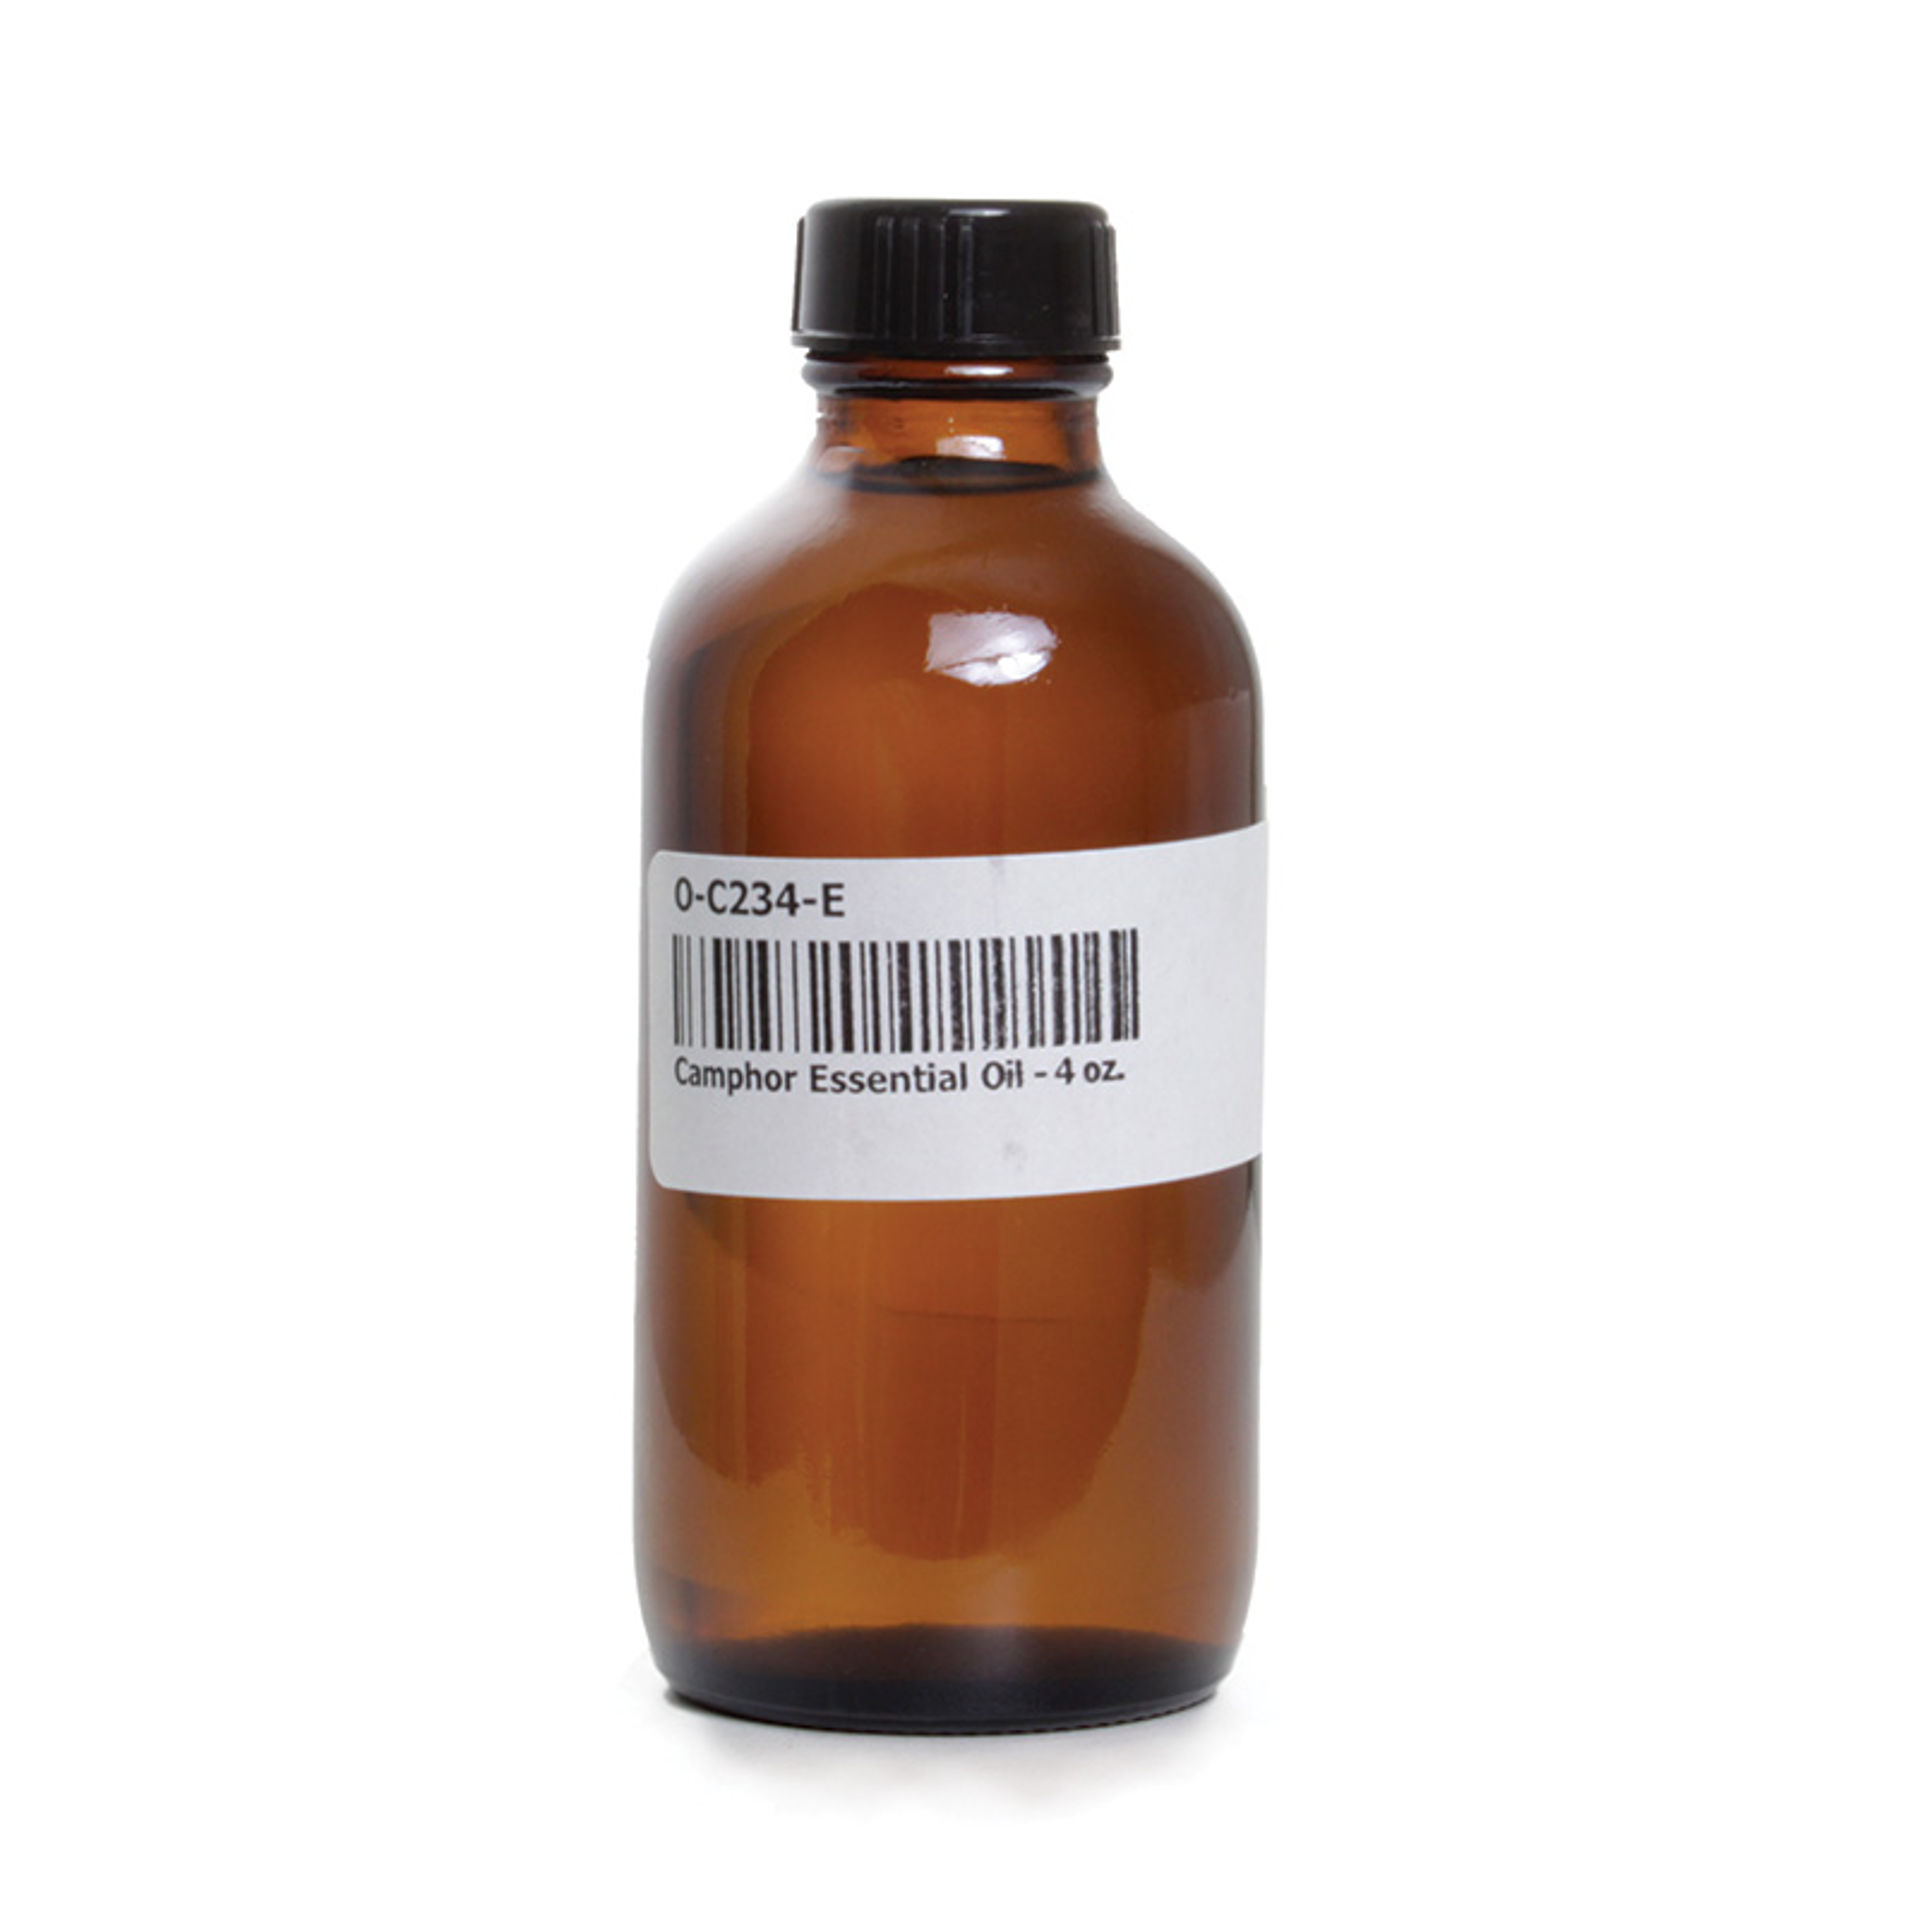 Picture of Camphor Essential Oil - 4 oz.